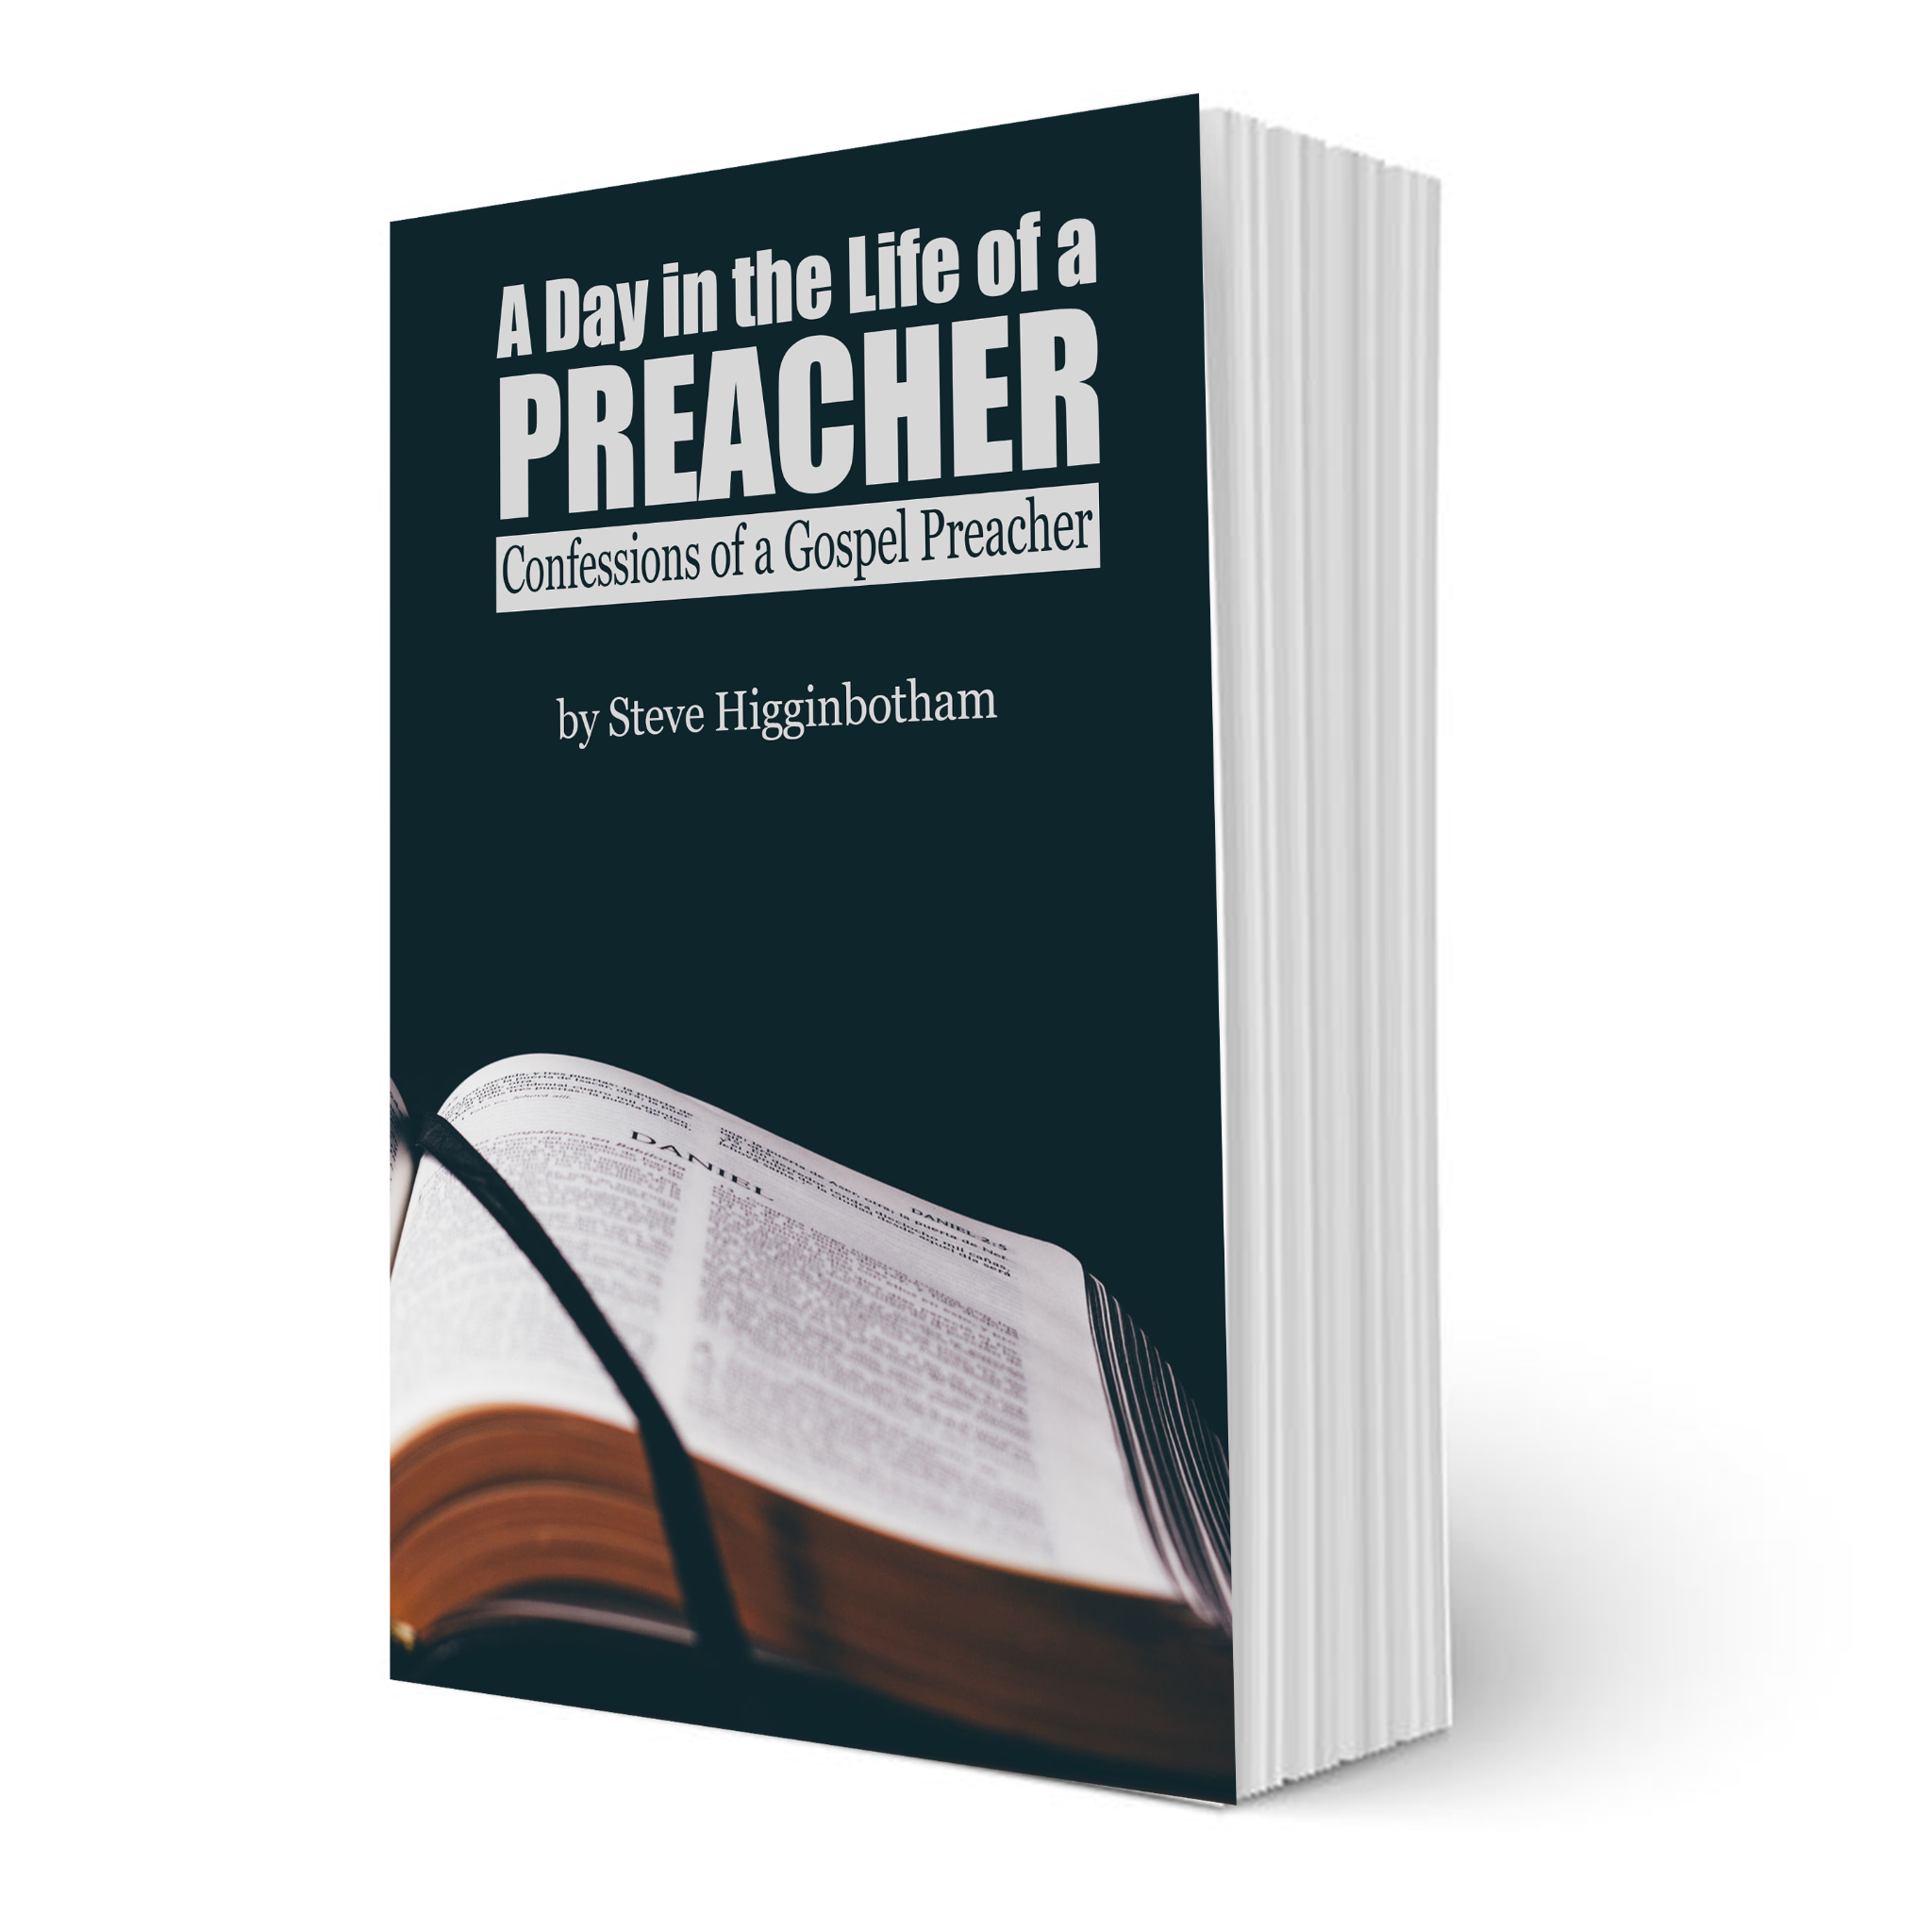 A Day in the Life of a Preacher